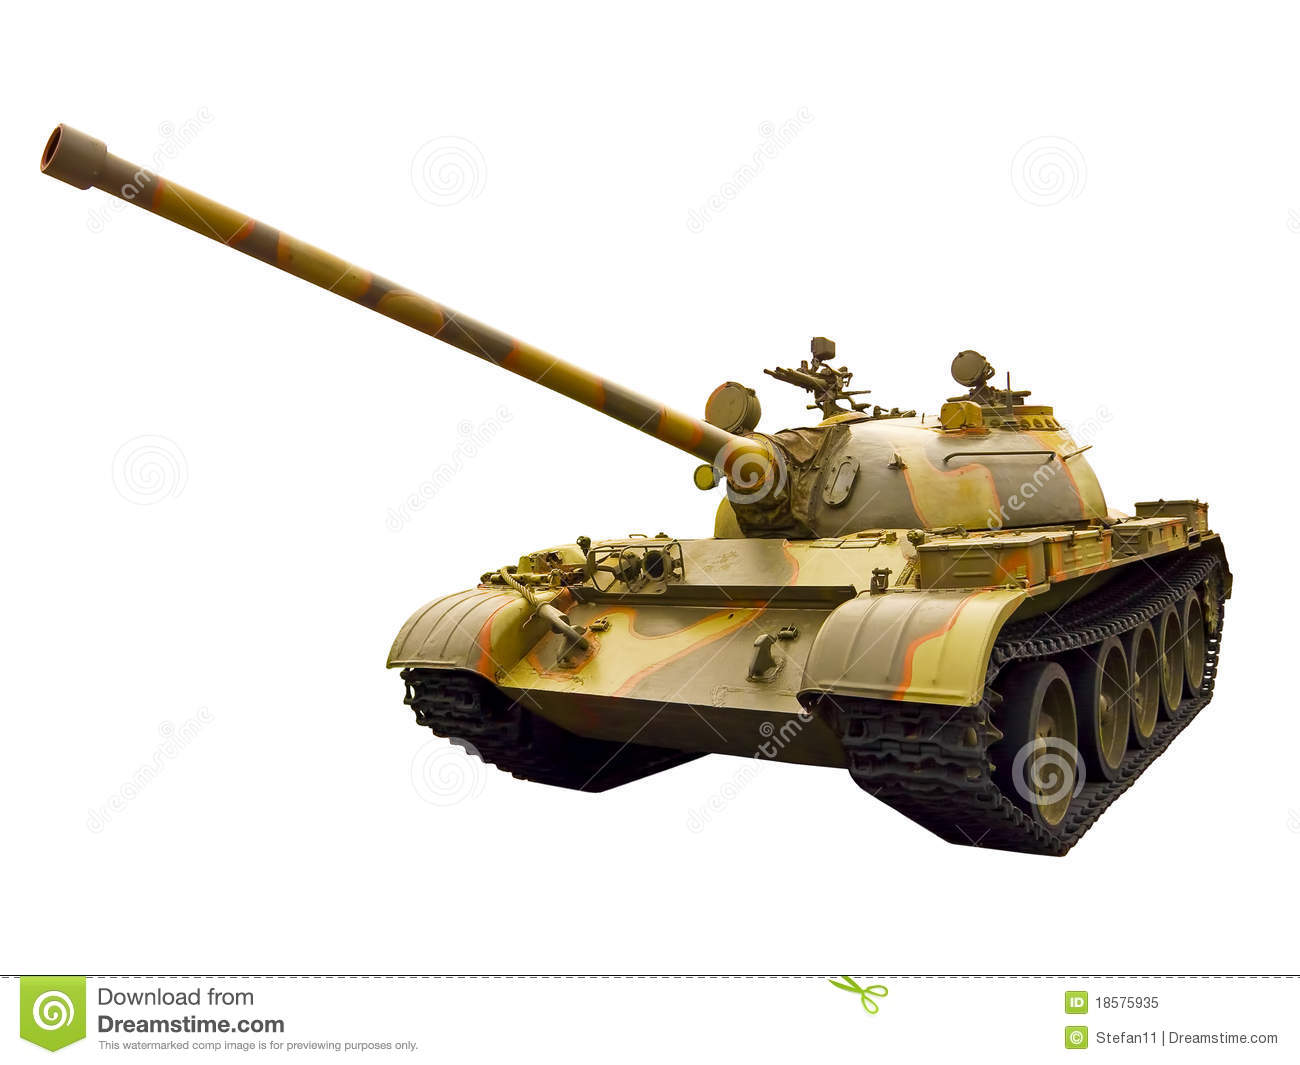 Russian tank t34 royalty free stock images image 23498479 - Soviet Tank Of World War Ii Royalty Free Stock Photo